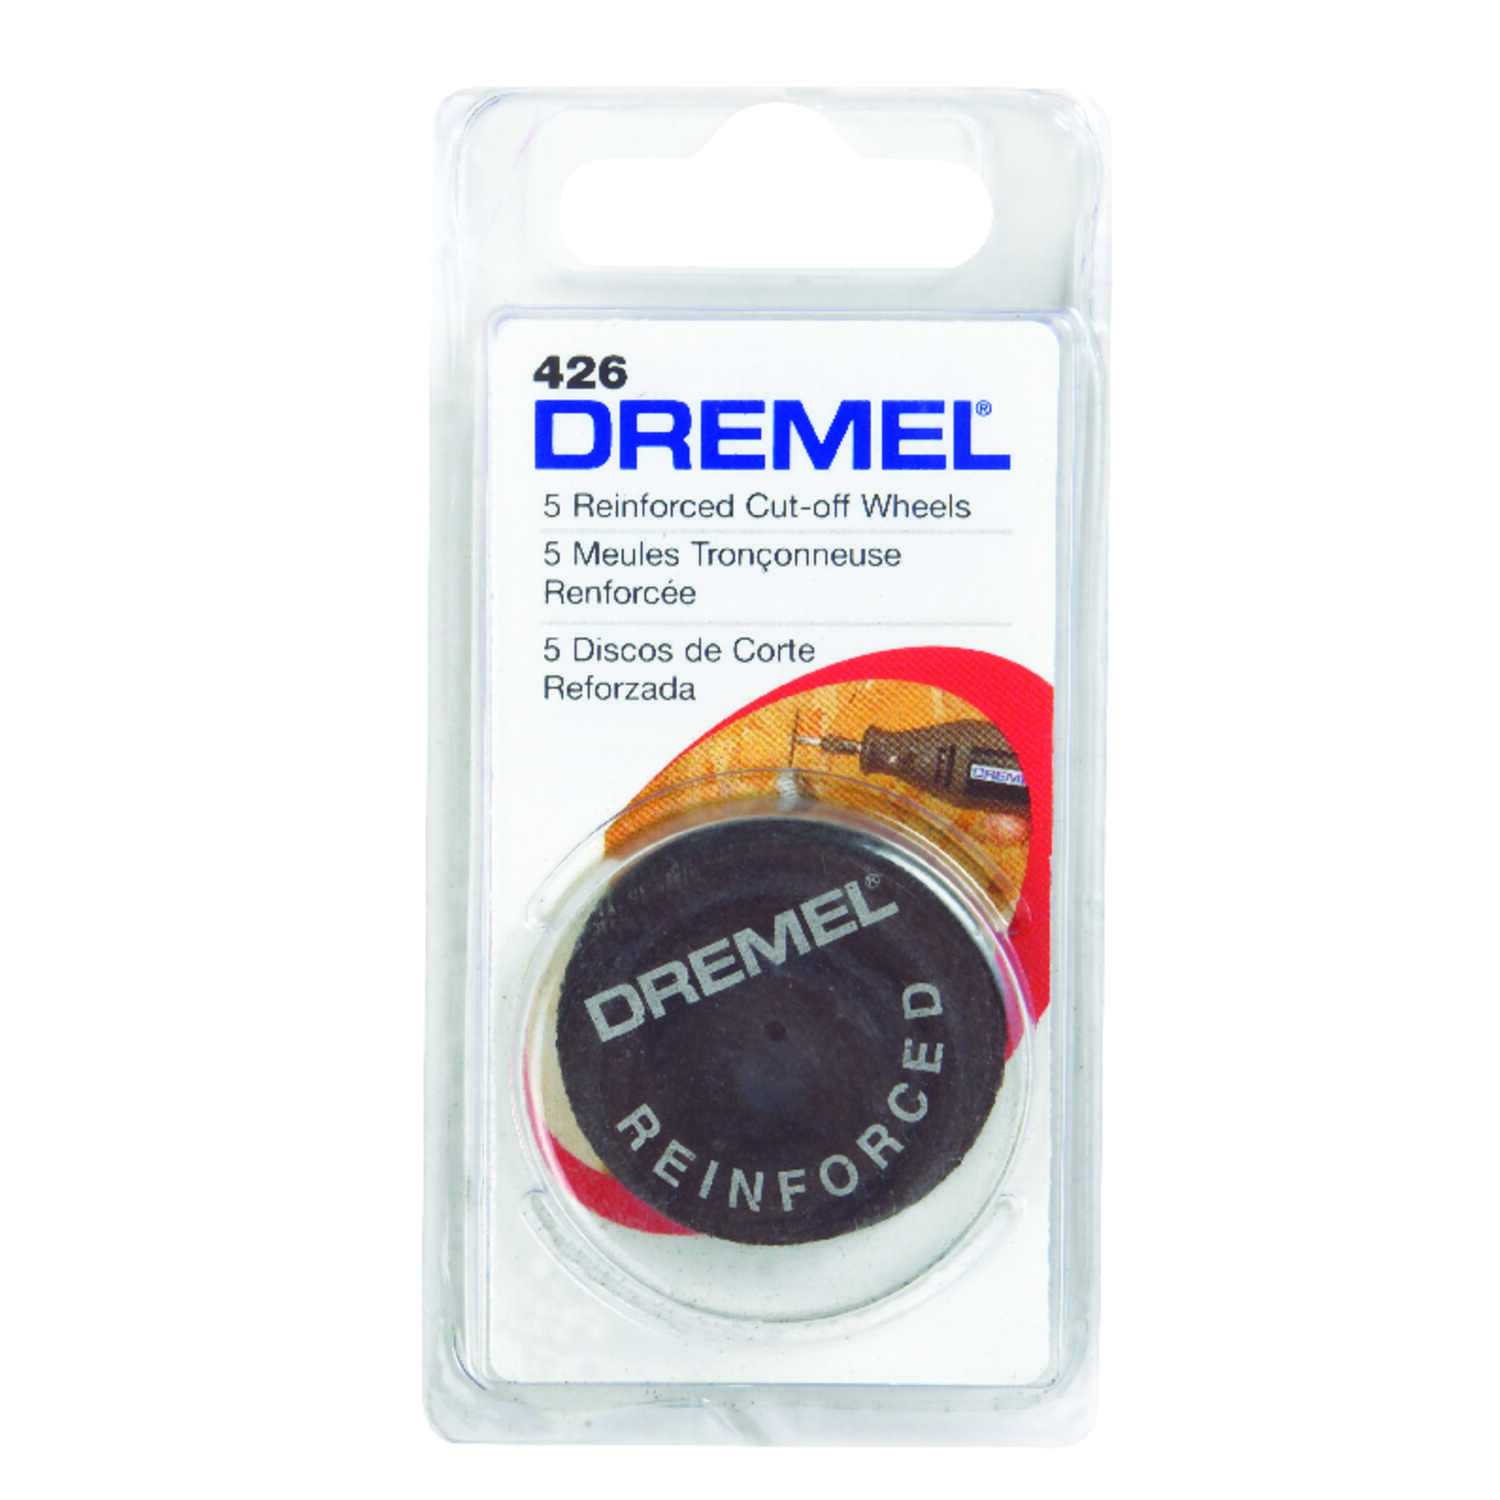 Dremel  1-1/4   x 1-1/4 in. L x 1-1/4 in. Dia. Fiberglass  Reinforced Cut-Off Wheels  5 pk